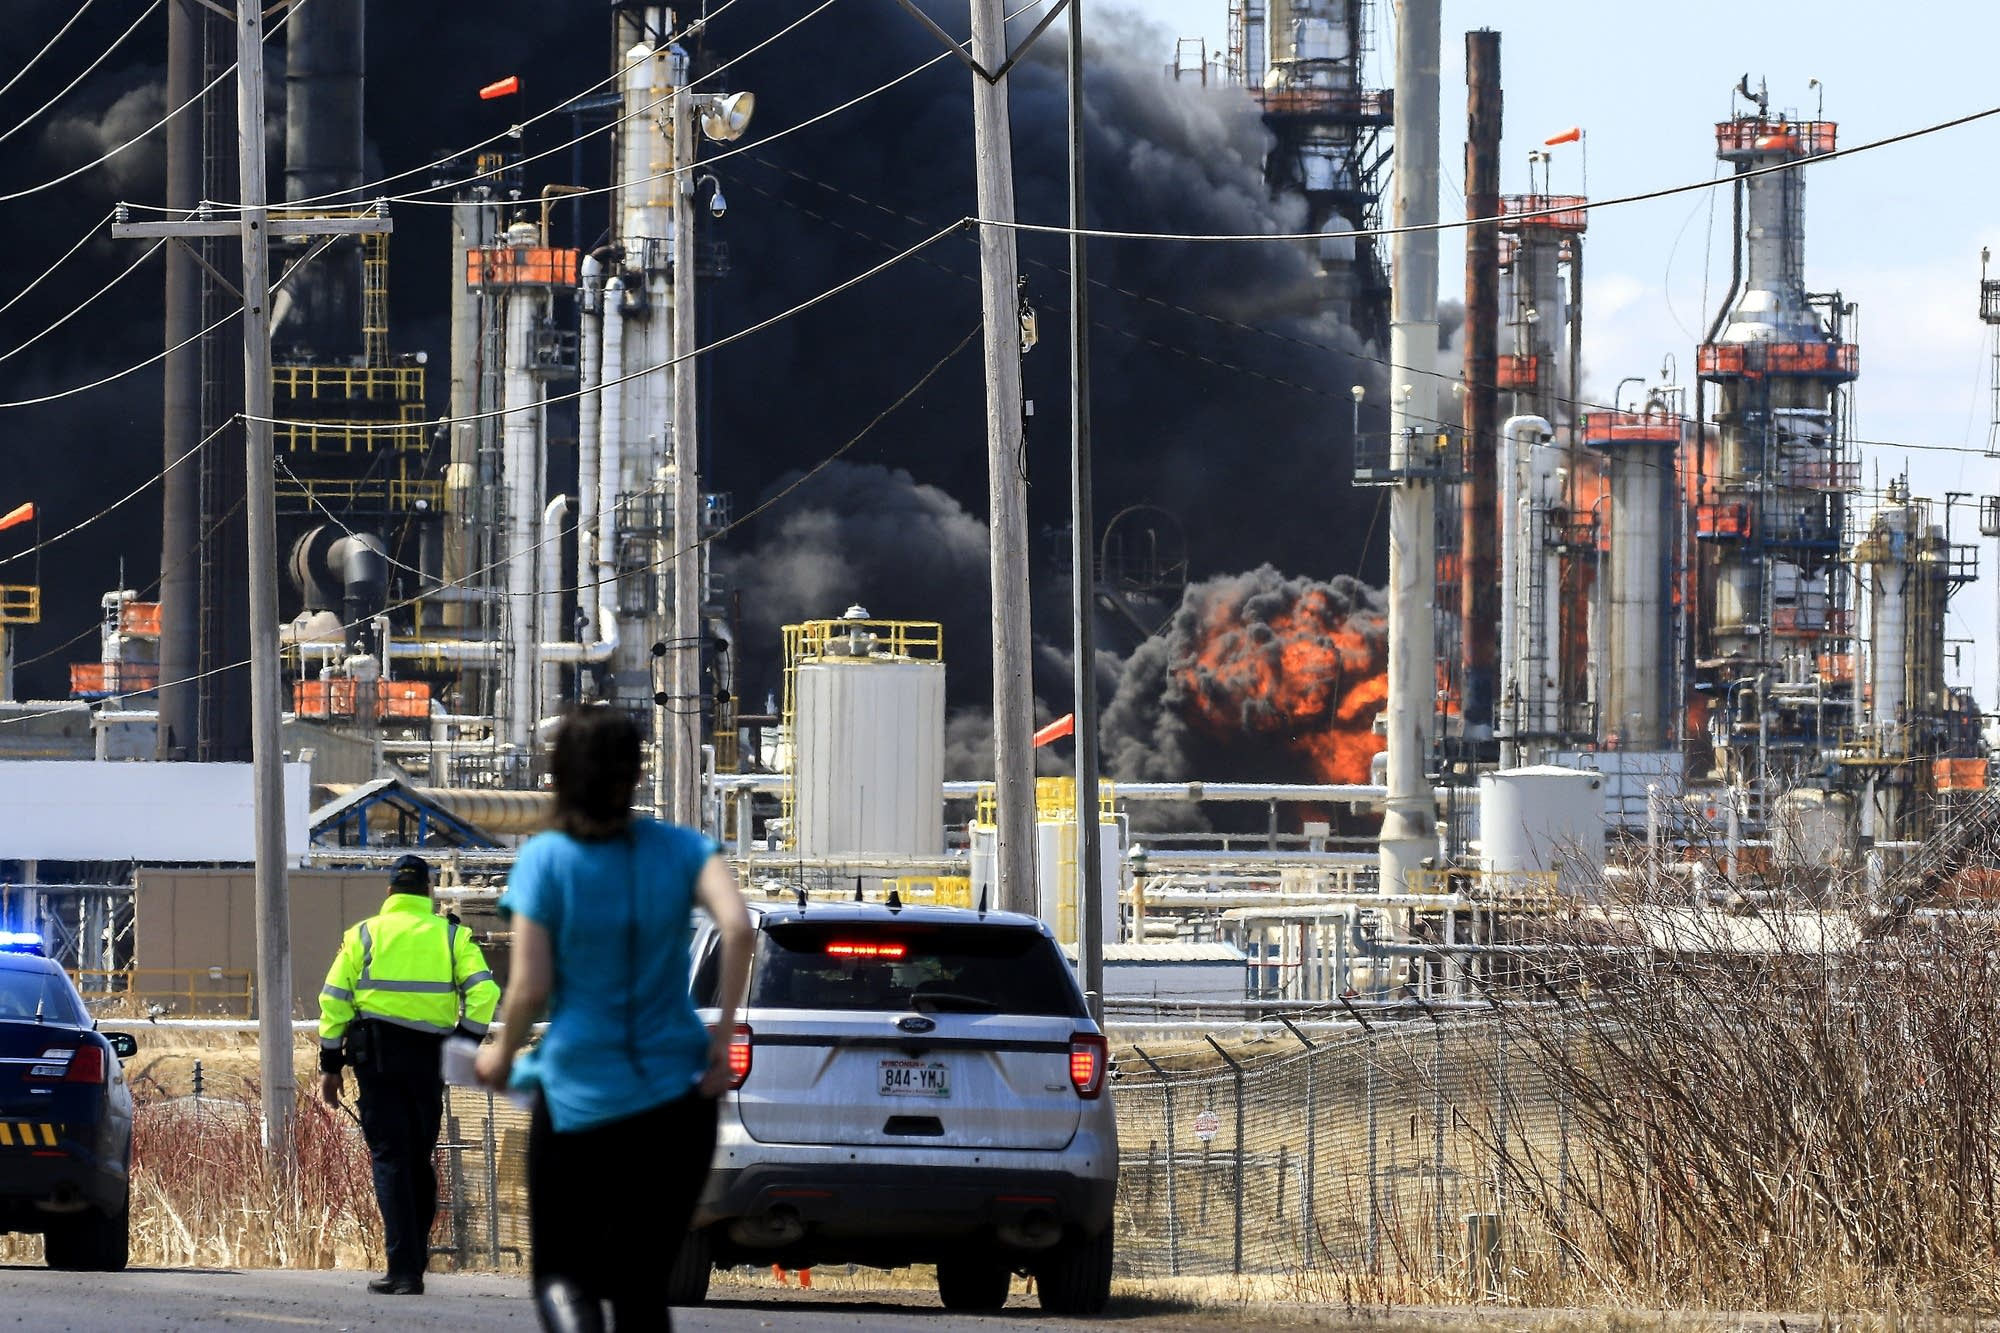 A large fireball erupts at the Husky Energy refinery.